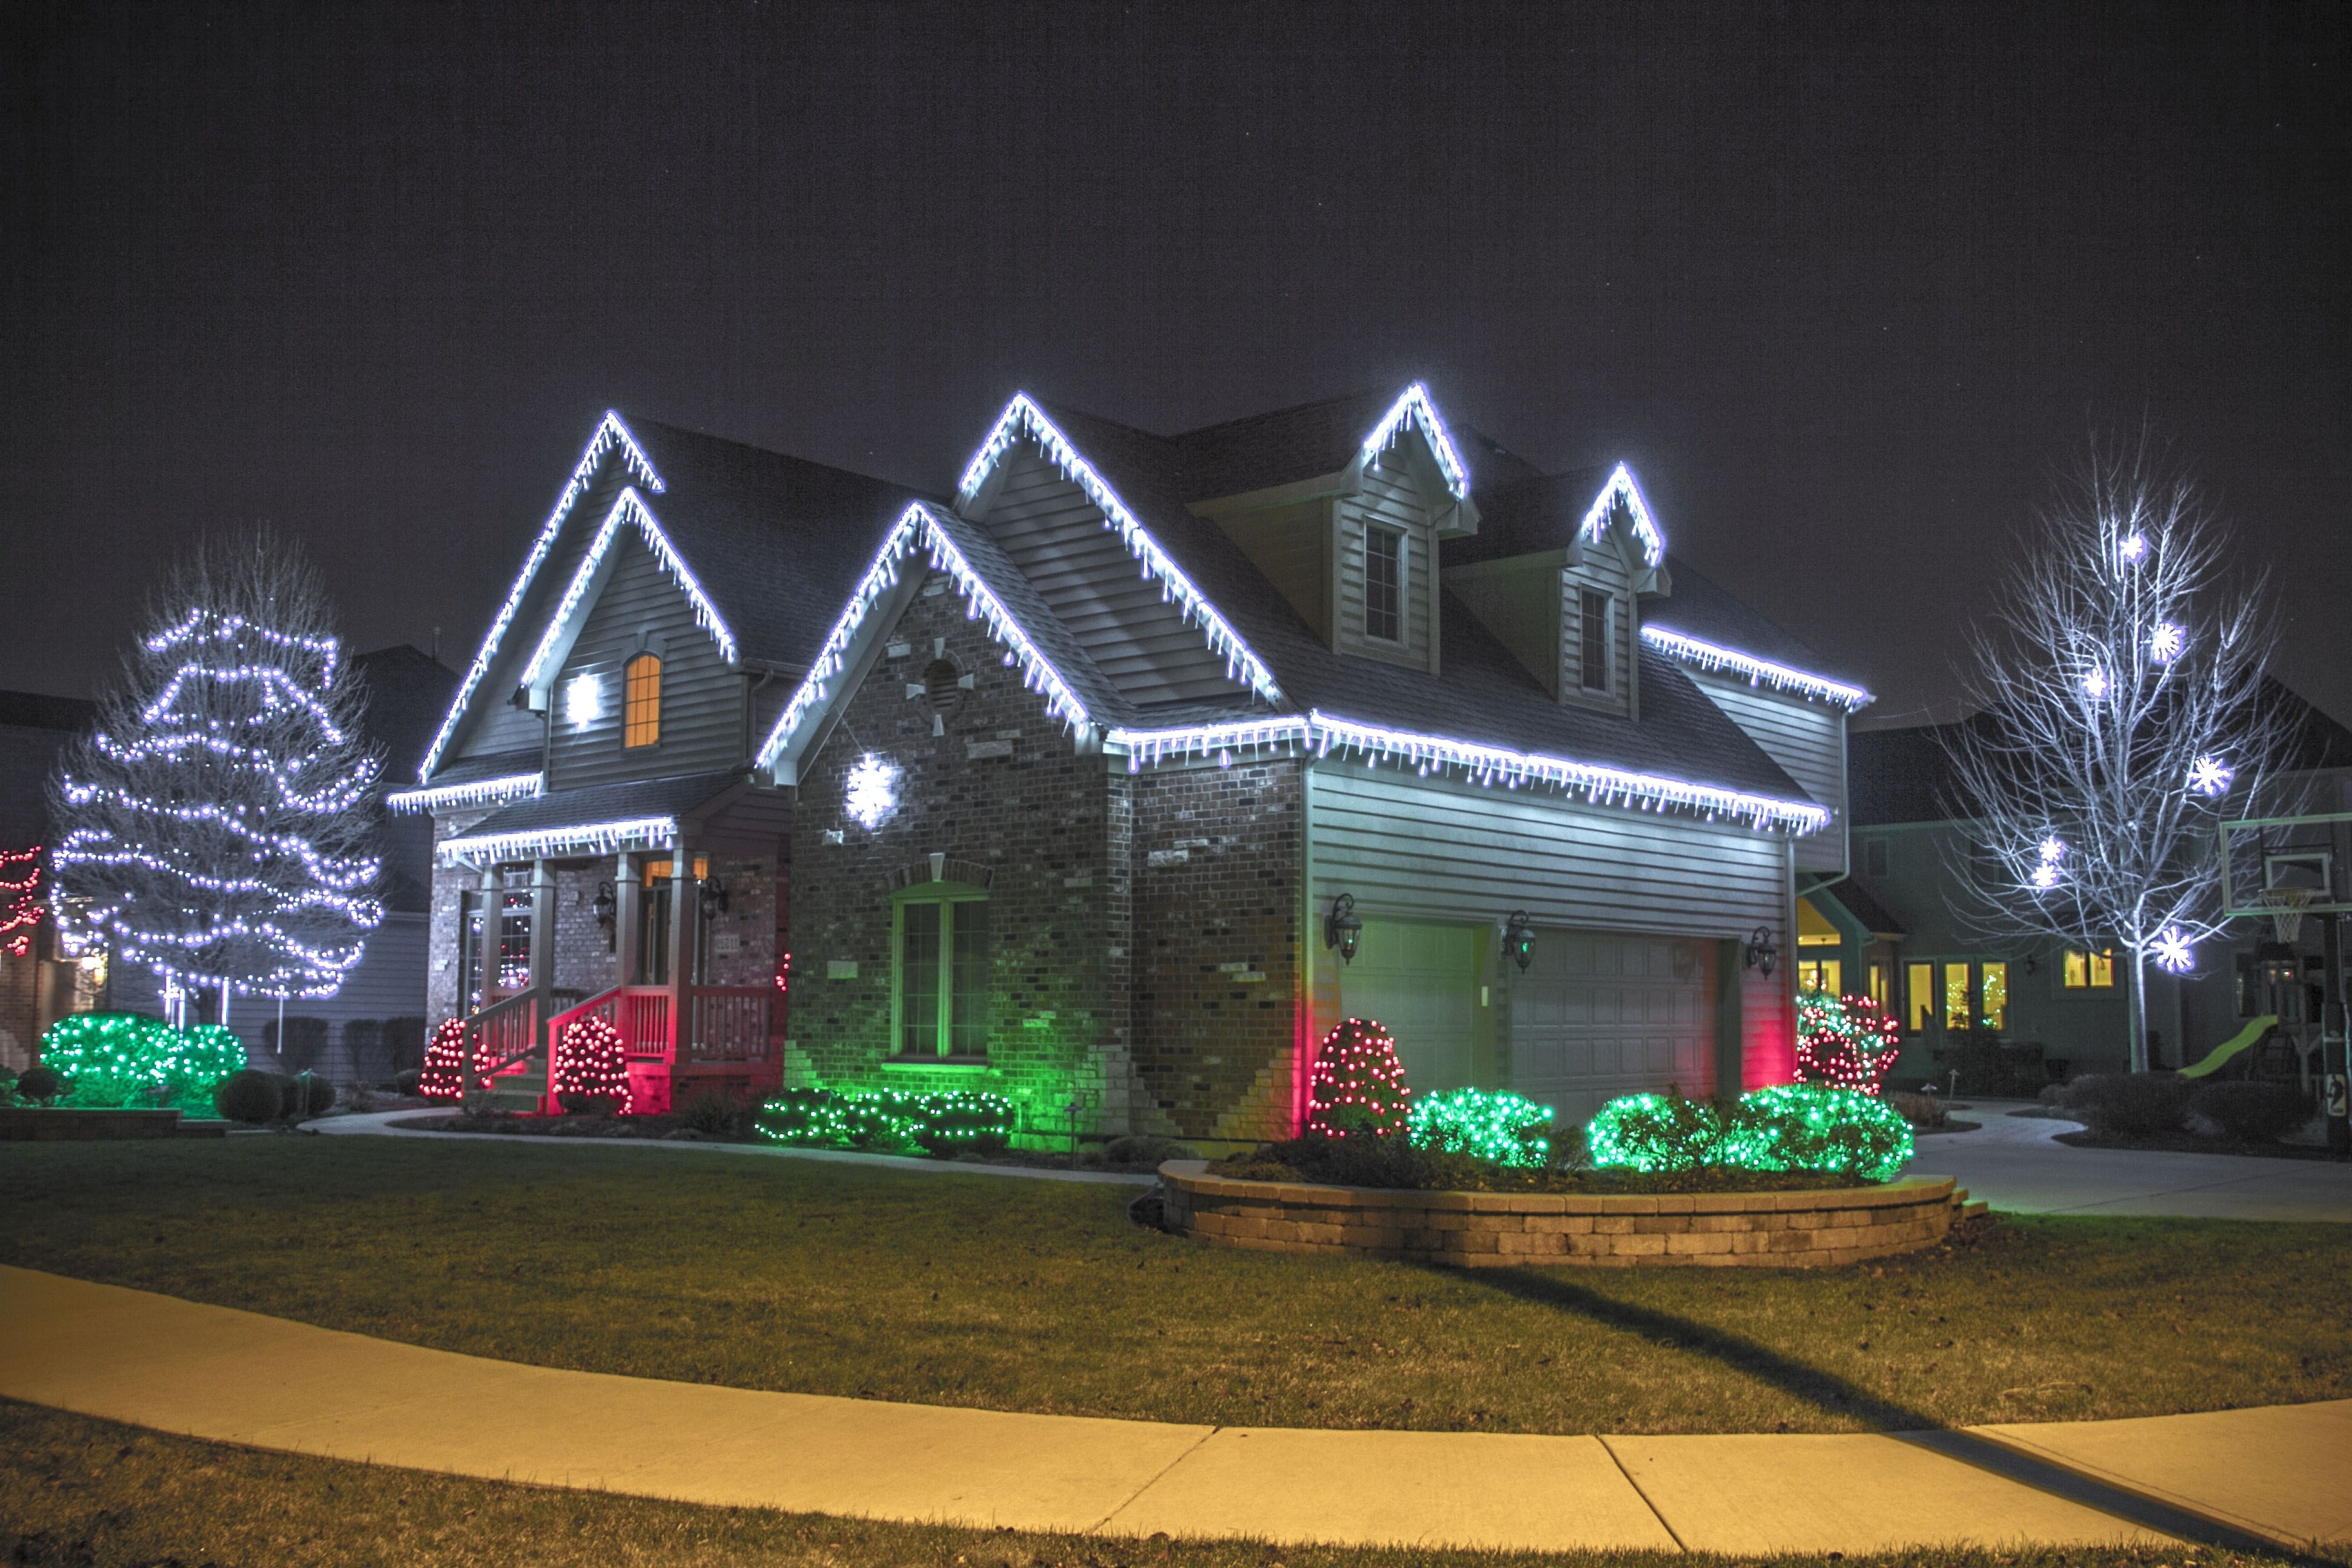 Outdoor Hanging Icicle Lights For Widely Used Outdoor Christmas Lights Ideas For The Roof (View 13 of 20)